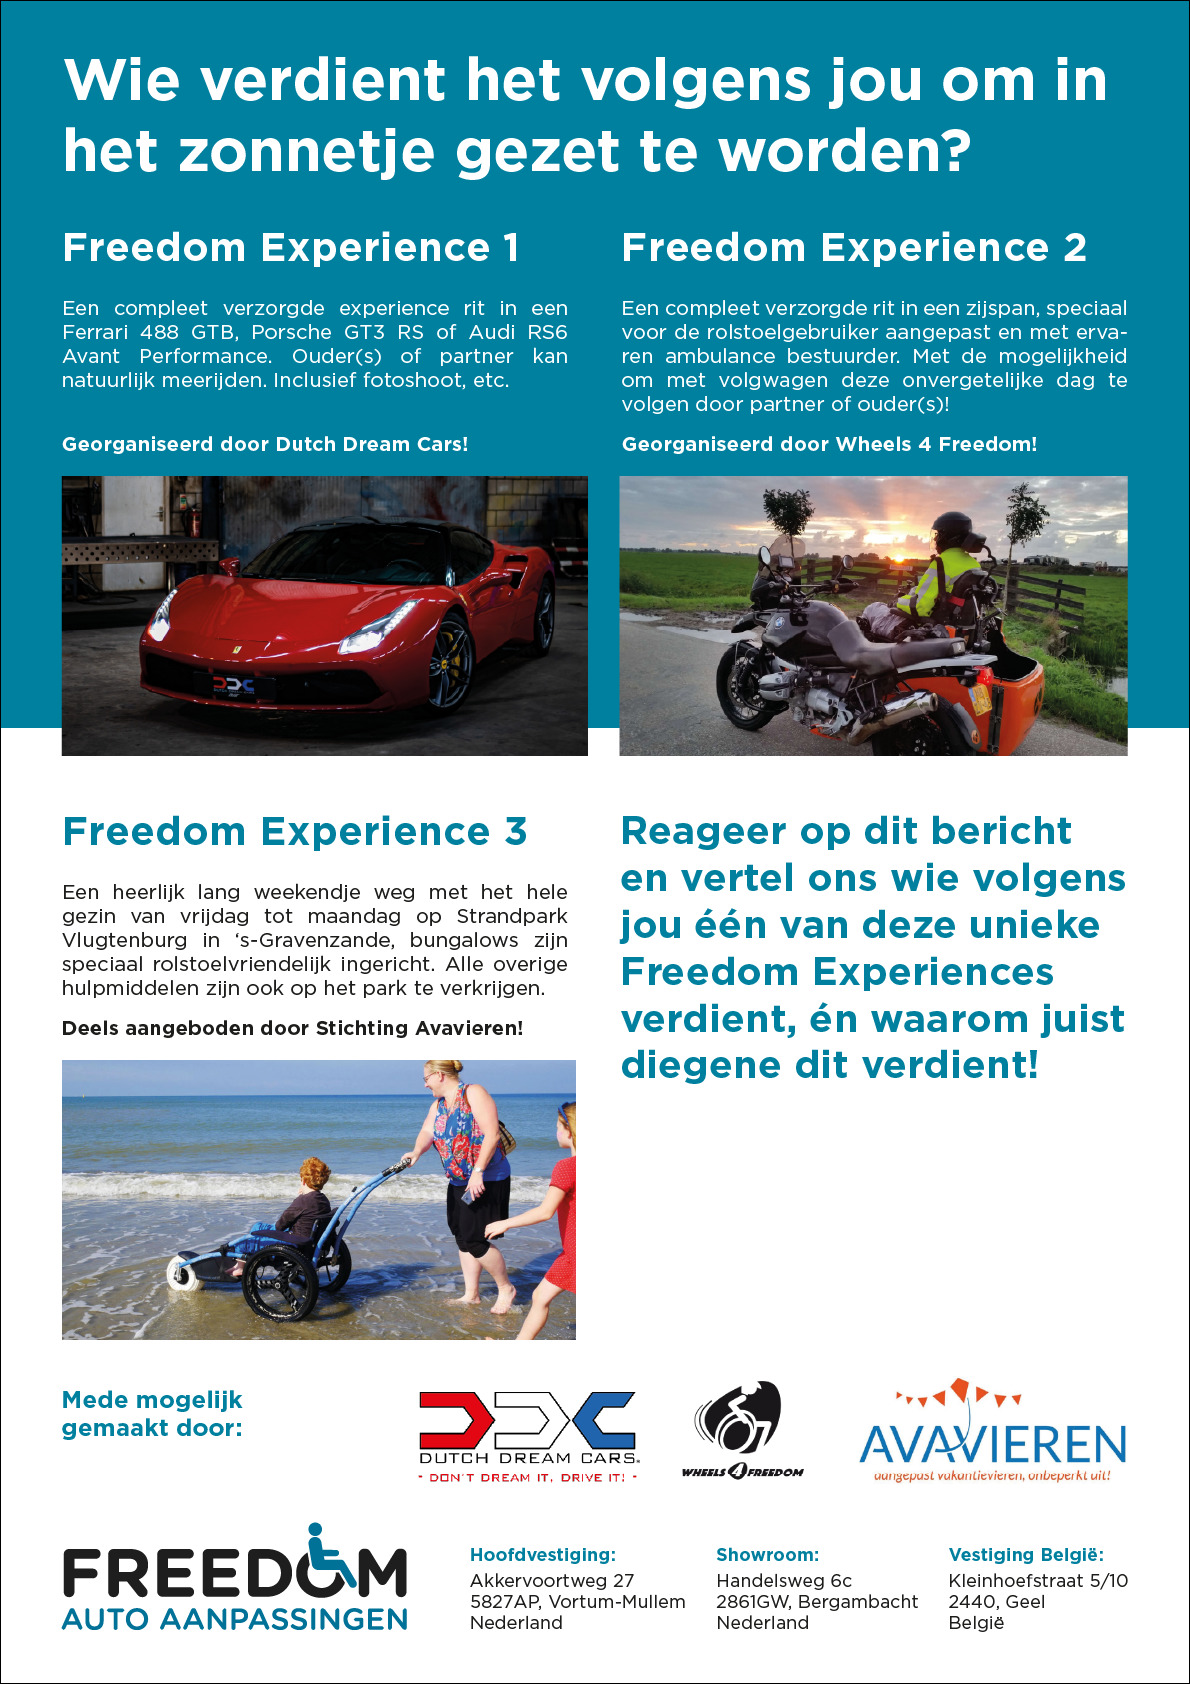 Freedom Experiences giveaway